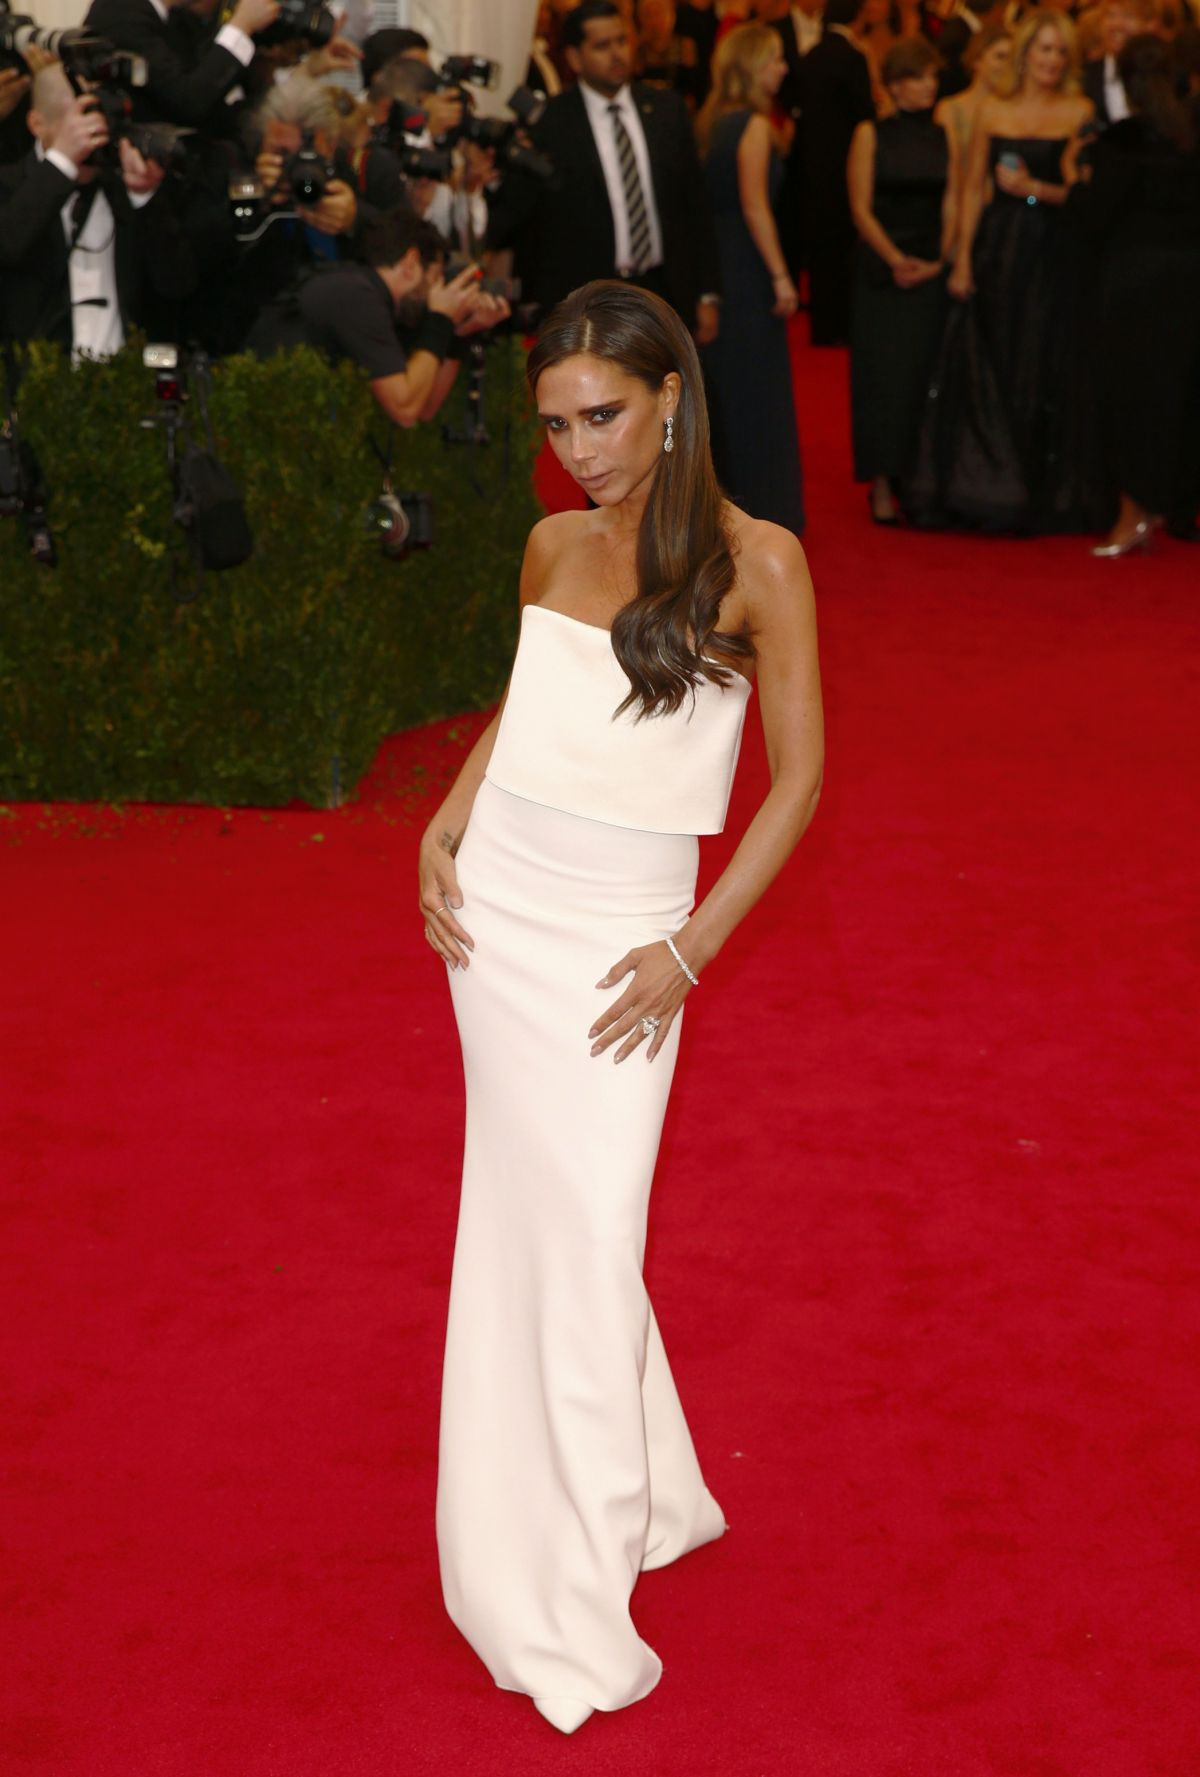 VICTORIA BECKHAM at MET Gala 2014 in New York